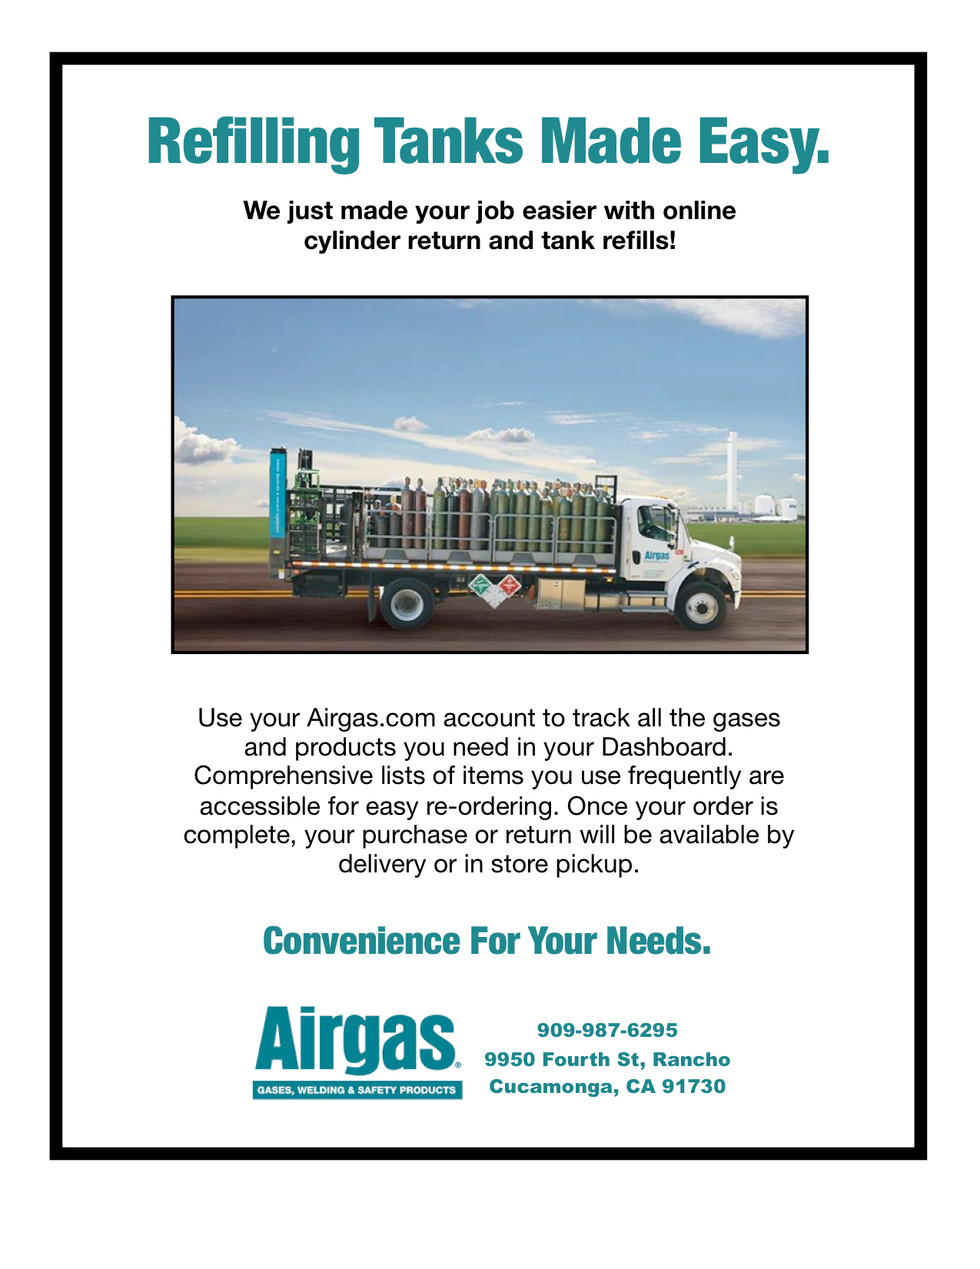 Airgas Flyer